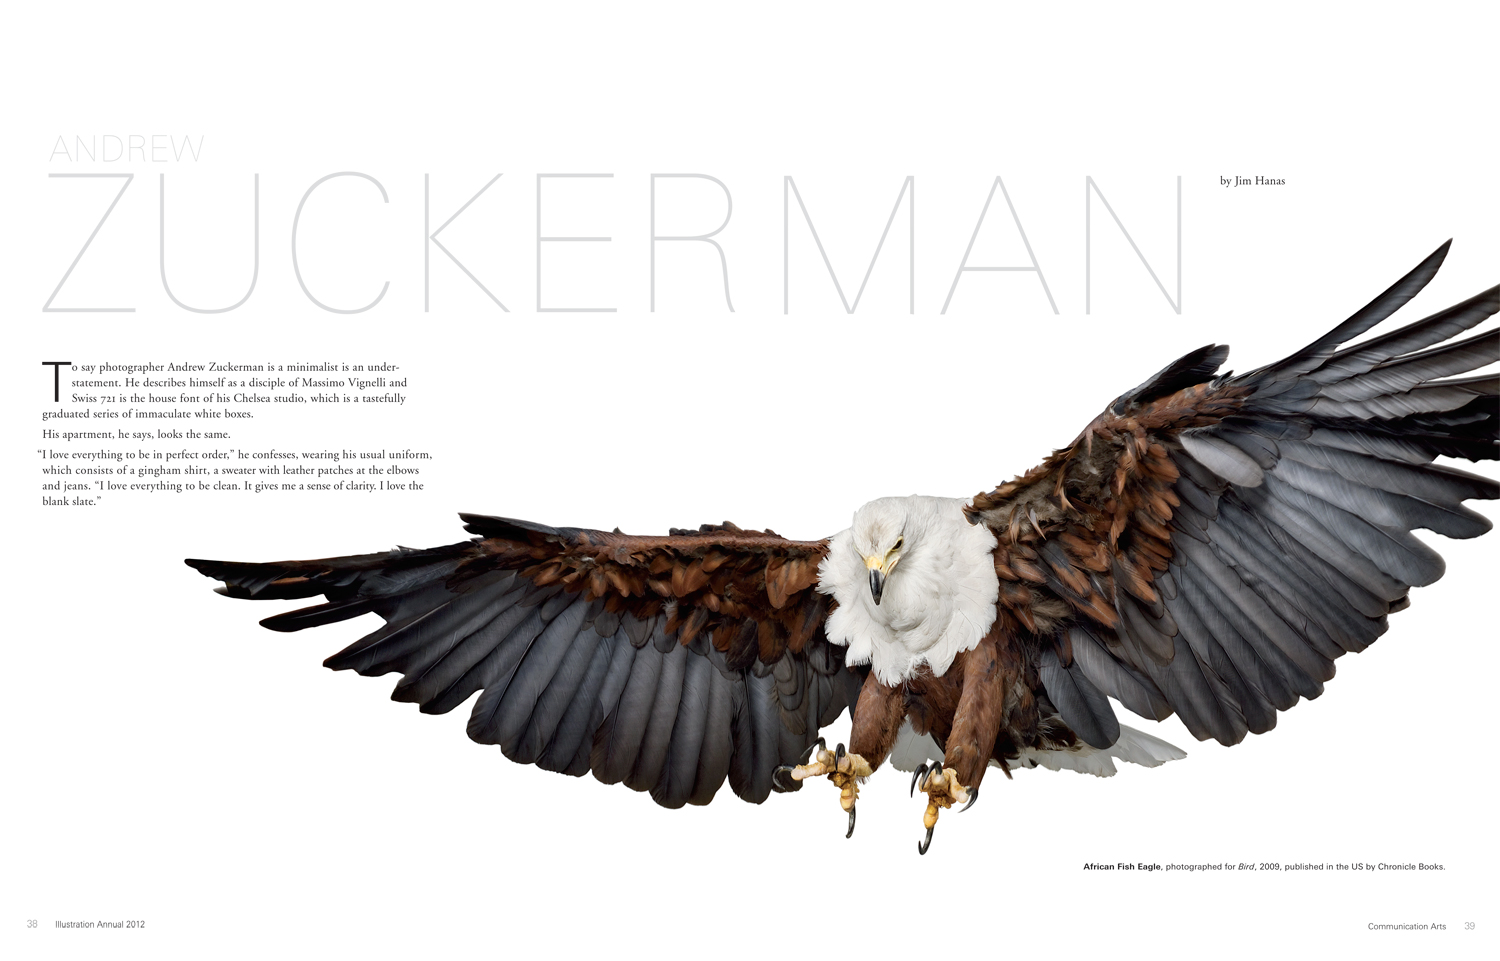 Communication Arts magazine: Andrew Zuckerman feature article